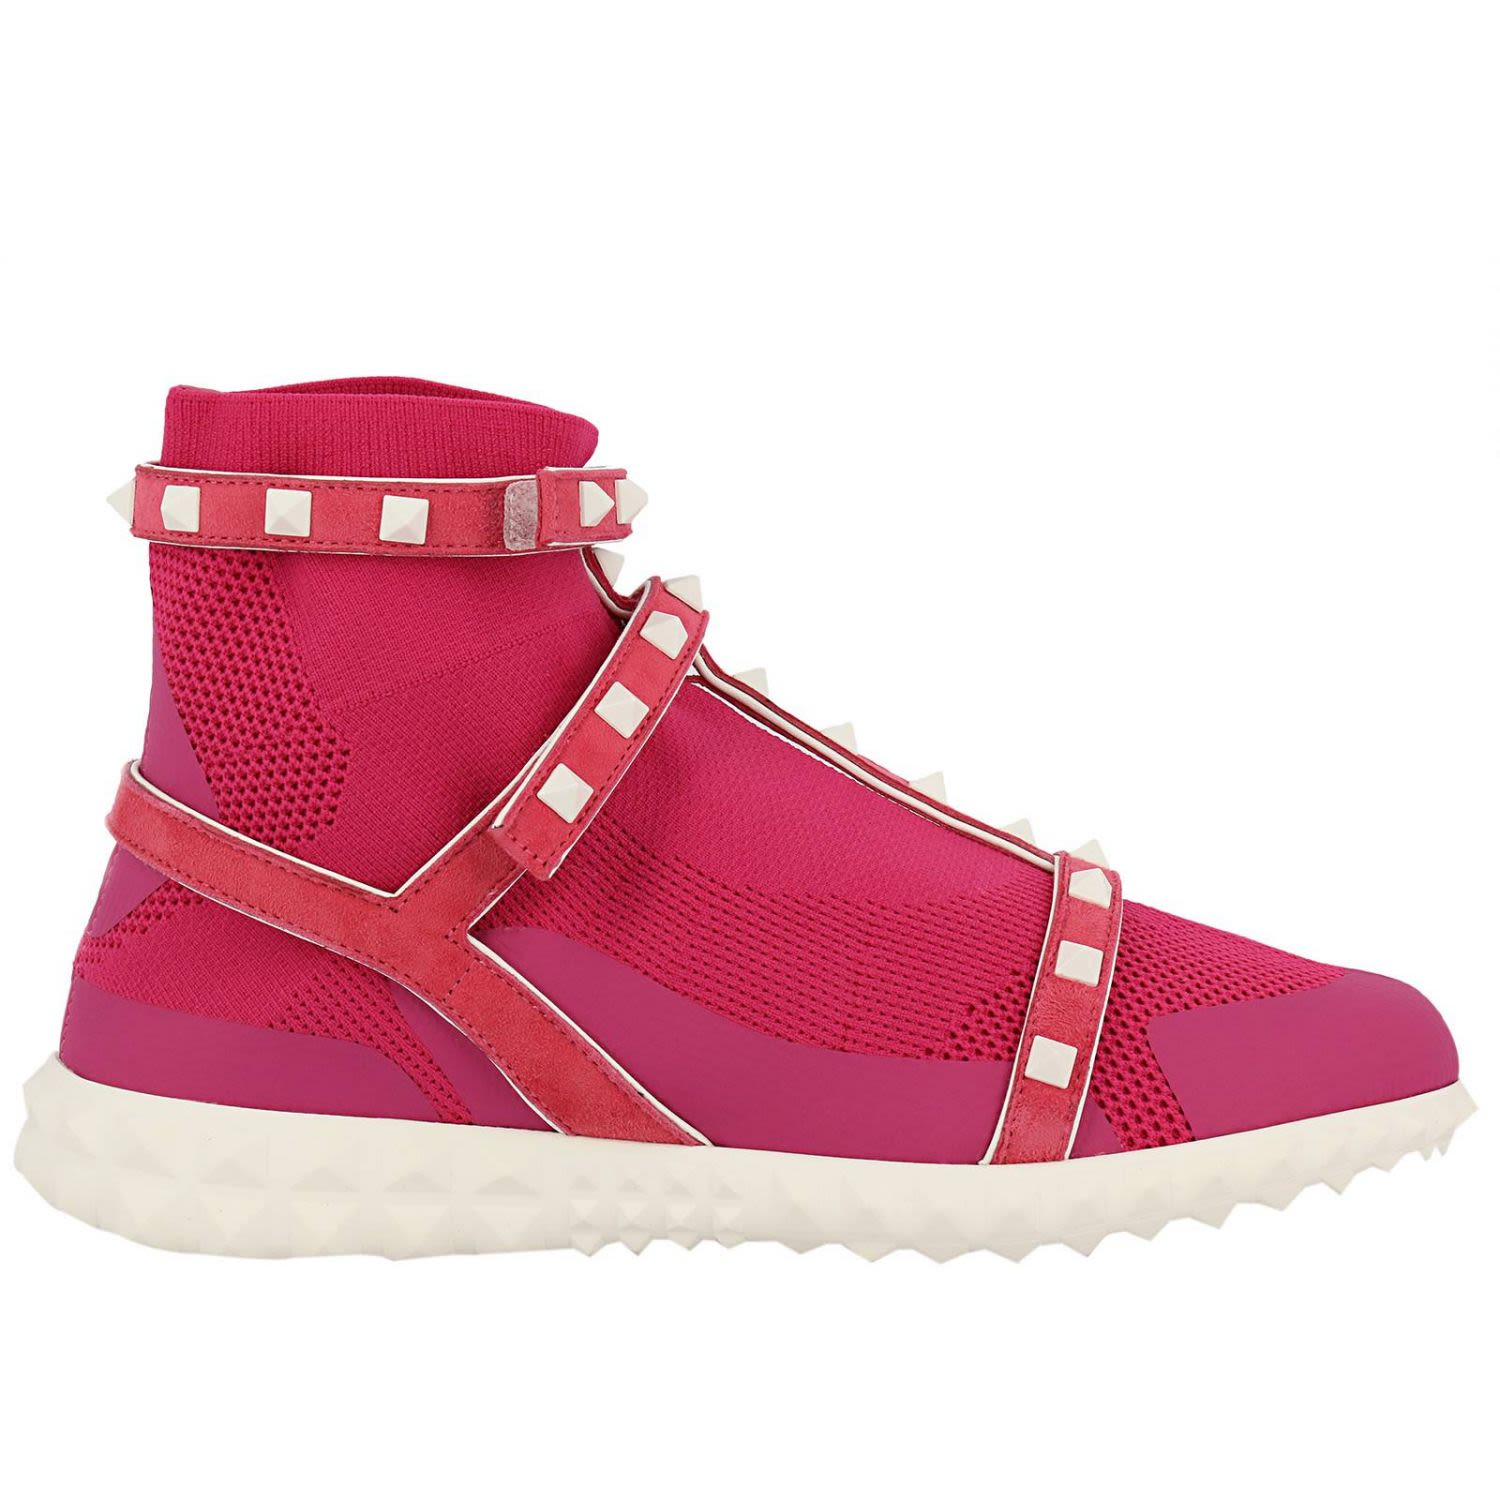 Valentino Garavani Sneakers Valentino Rockstud Bodytech Sneakers With Sock And Leather Bands With Co